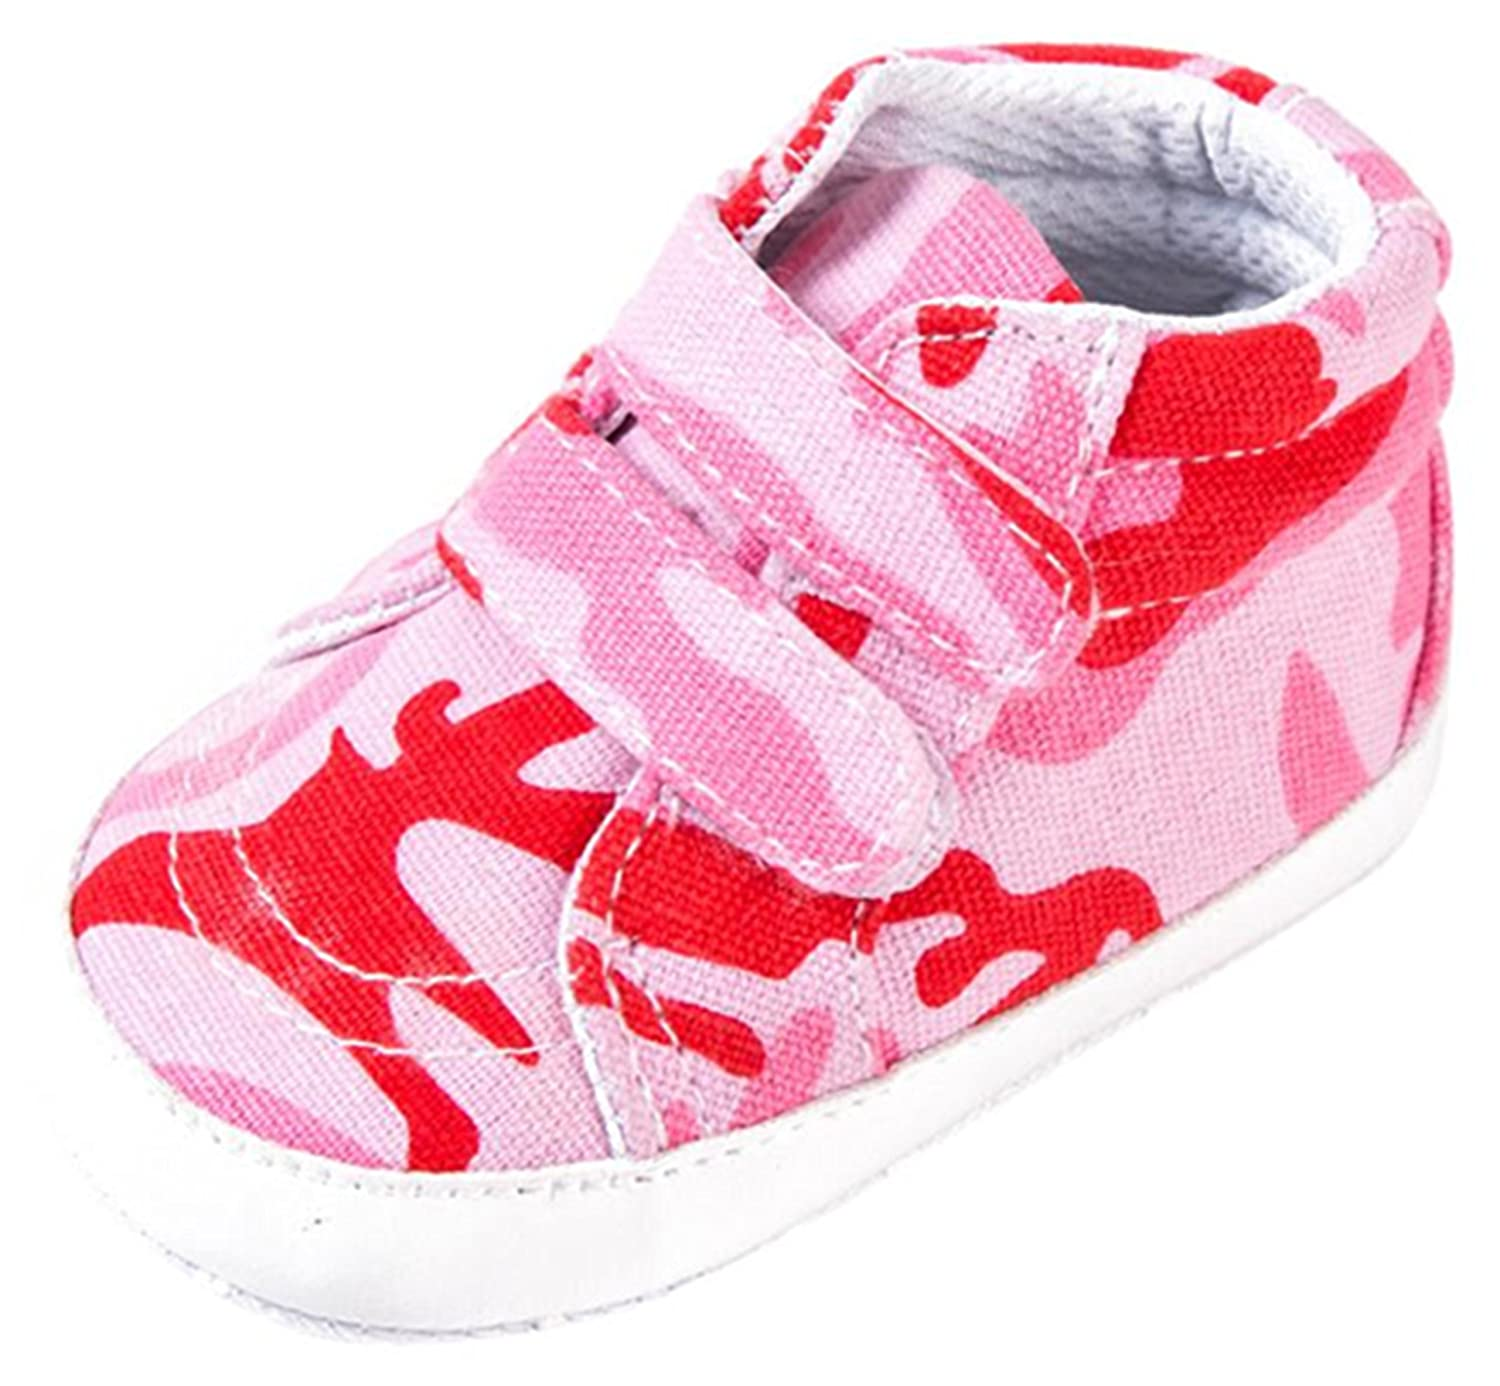 Iuhan Camouflage Newborn Sole Crib Soft Sneaker Baby Girl Boy Anti-slip Canvas Shoes